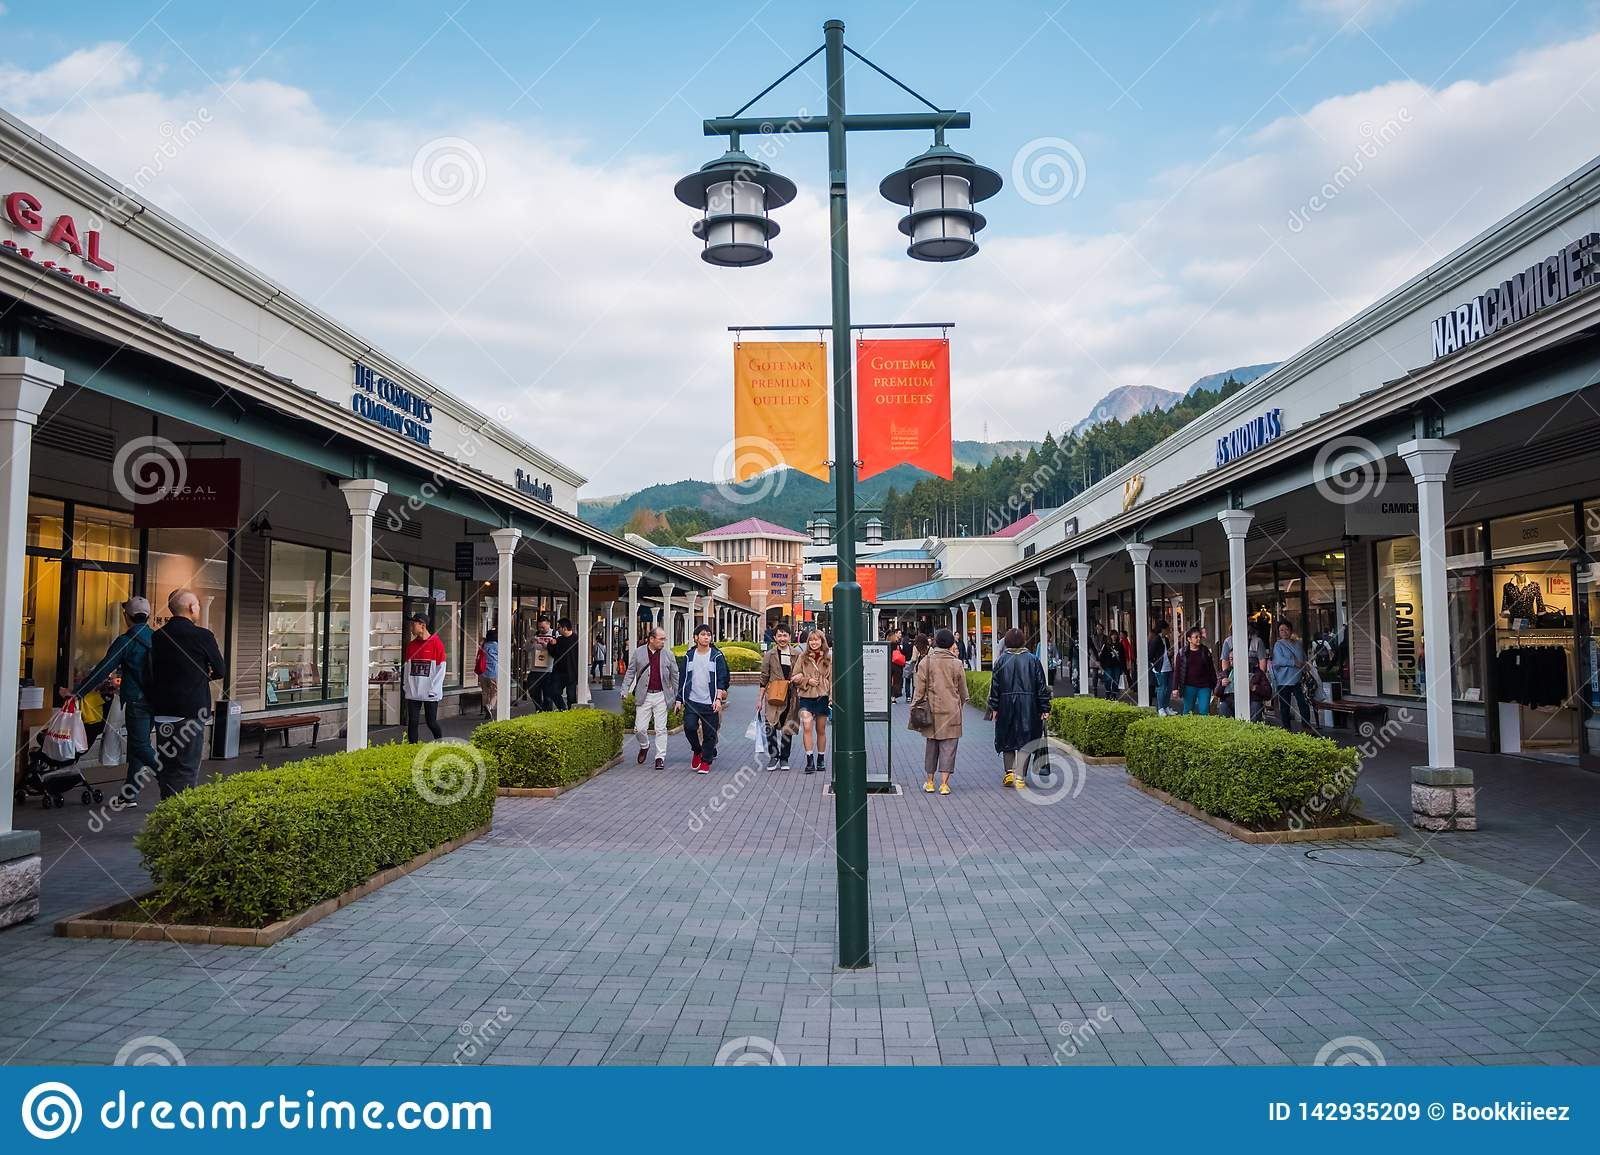 0754806ce9be67 Tourists visit and shopping at Gotemba Premium Outlets. This is an outlet  mall located in Gotemba, Shizuoka, Japan, near Mount Fuji.